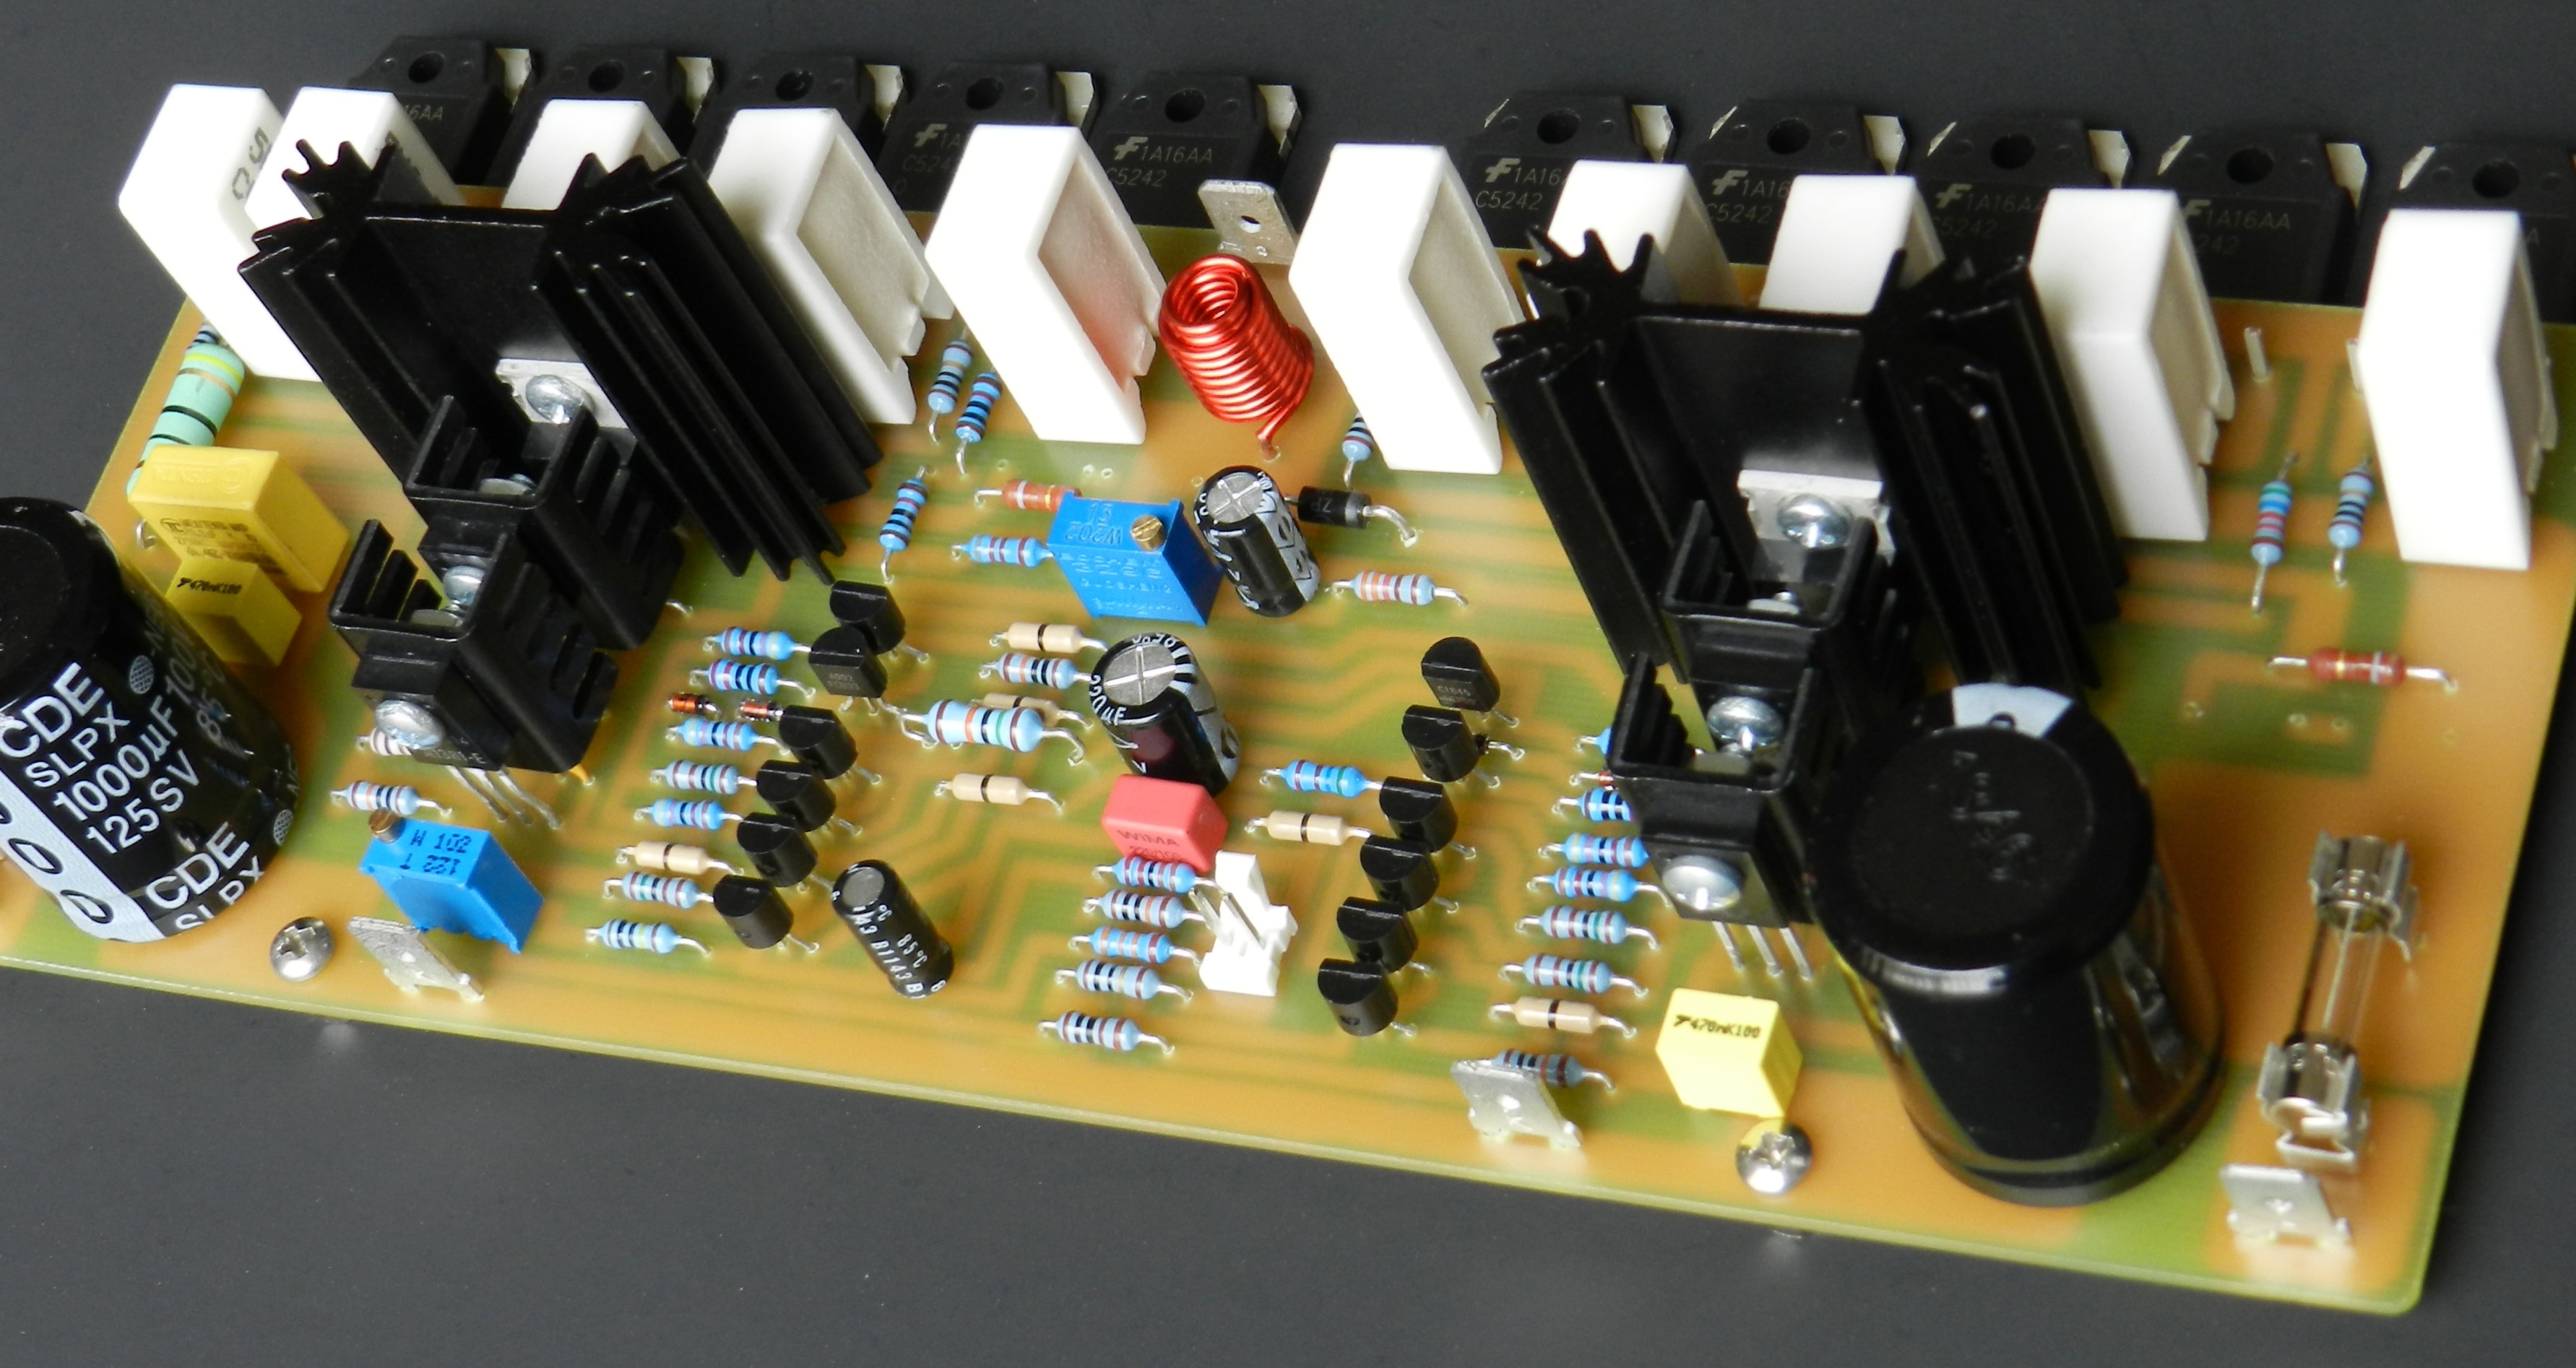 Using Only Four Transistors In The Quasicomplementary Amplifier Wwwseekiccom Circuitdiagram Basiccircuit Analogcircuit Pushpull Project 58 Is Quasi Complementary Version Of 44 Features A Cascoded Differential Input Stage As Well Voltage